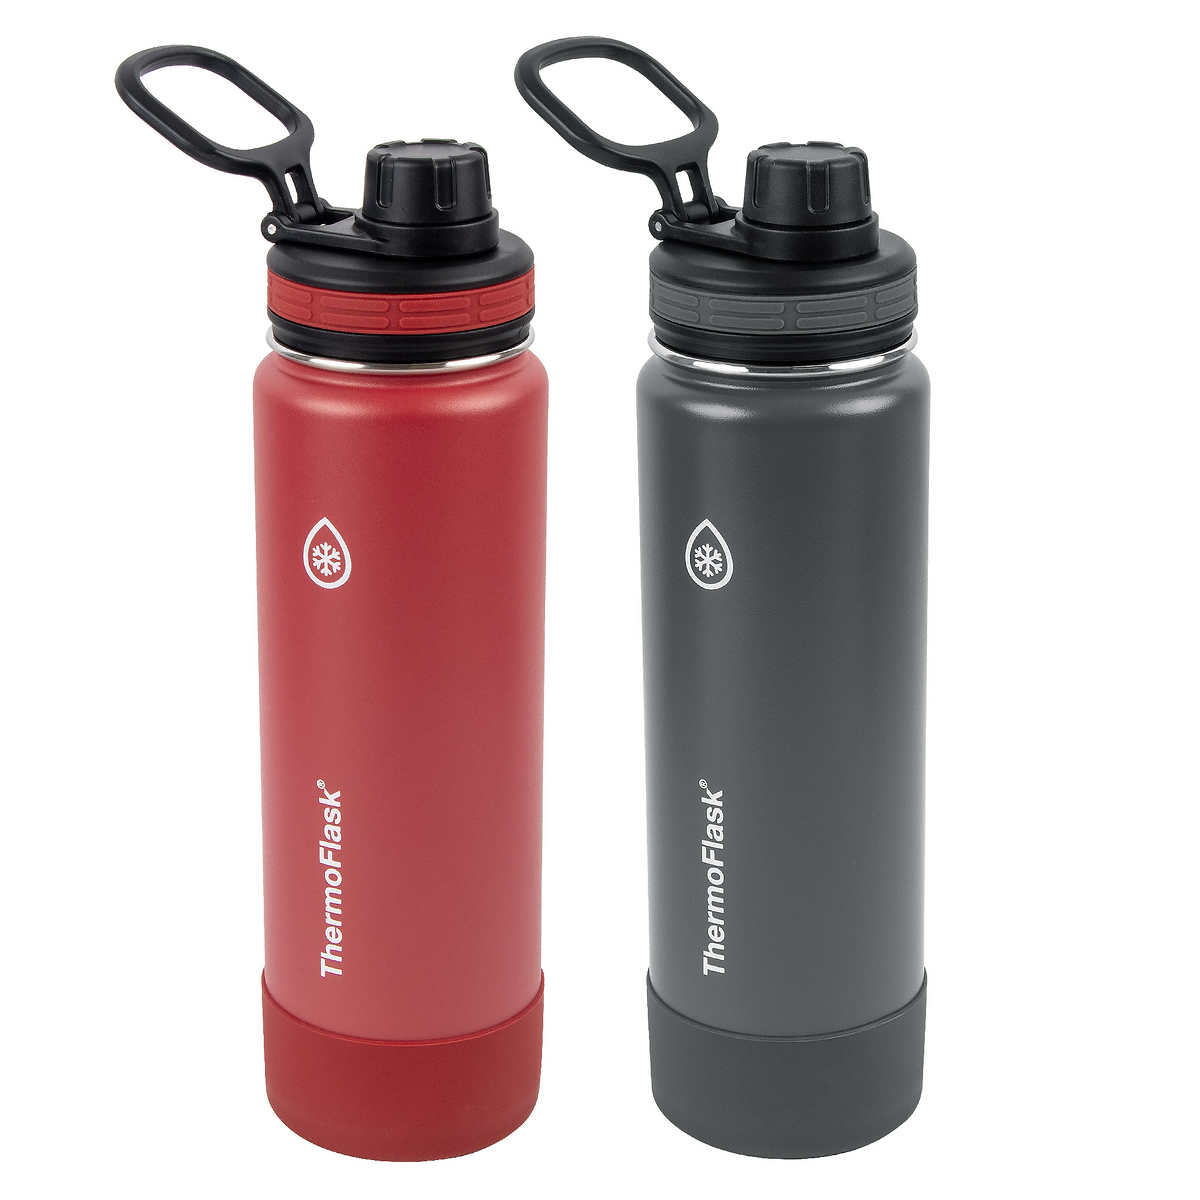 Thermoflask 709 Ml 24 Oz Stainless Steel Insulated Water Bottle 2 Pack